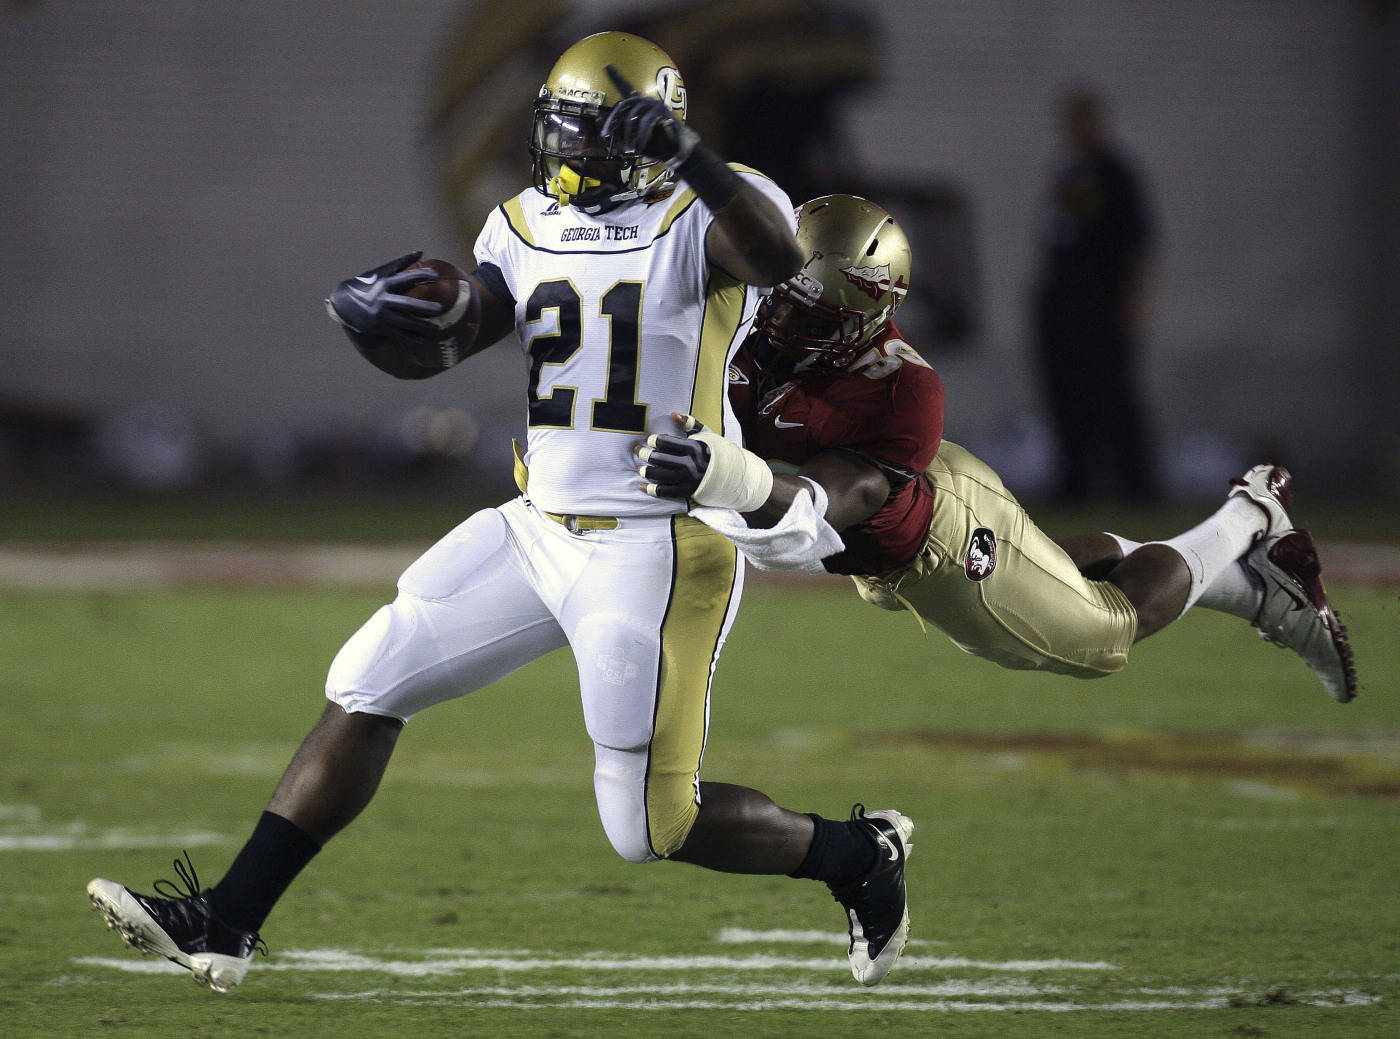 Georgia Tech running back Jonathan Dwyer, left, runs for first-quarter yardage as Florida State linebacker Dekoda Watson tries to make the stop during an NCAA college football game, Saturday, Oct. 10, 2009, in Tallahassee, Fla.